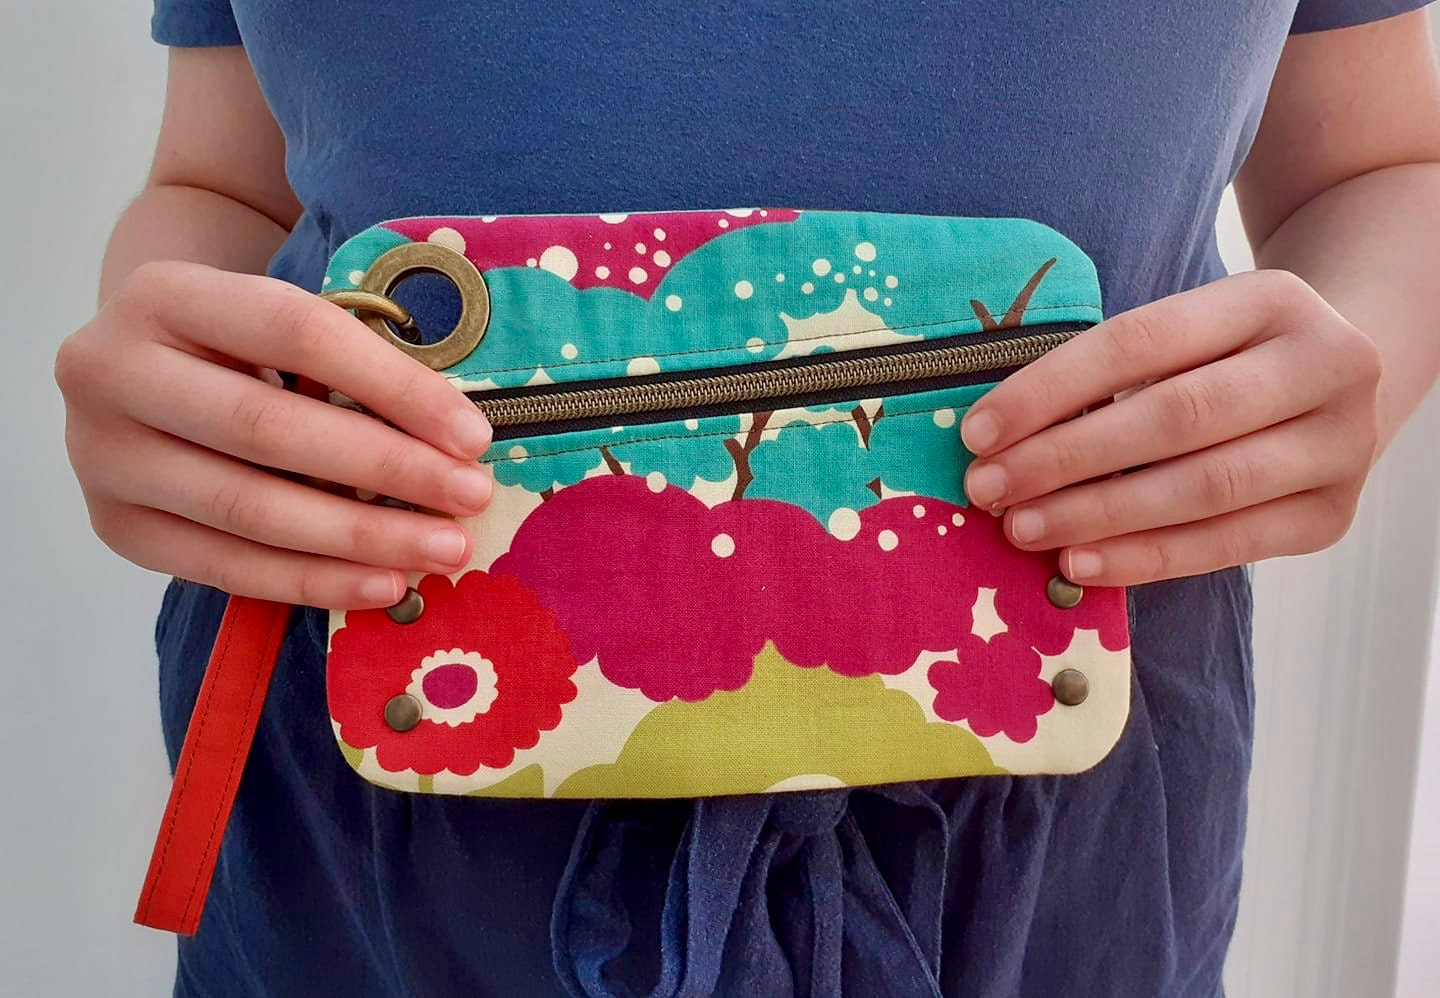 Unagi assymetrical clutch Sincerely Jen Pattern tester bag